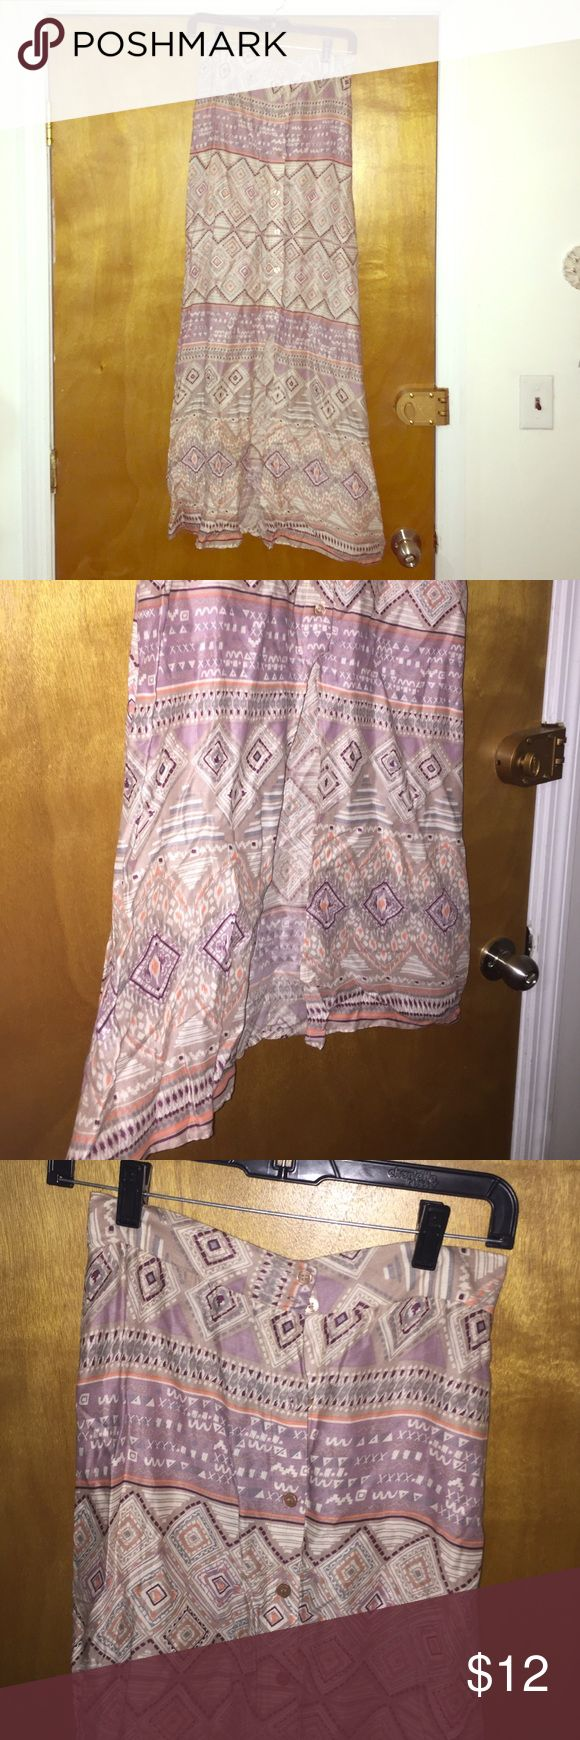 Tribal Maxi Skirt Button down maxi tribal skirt. Too small for me. Super cute and comfy. Skirts Maxi